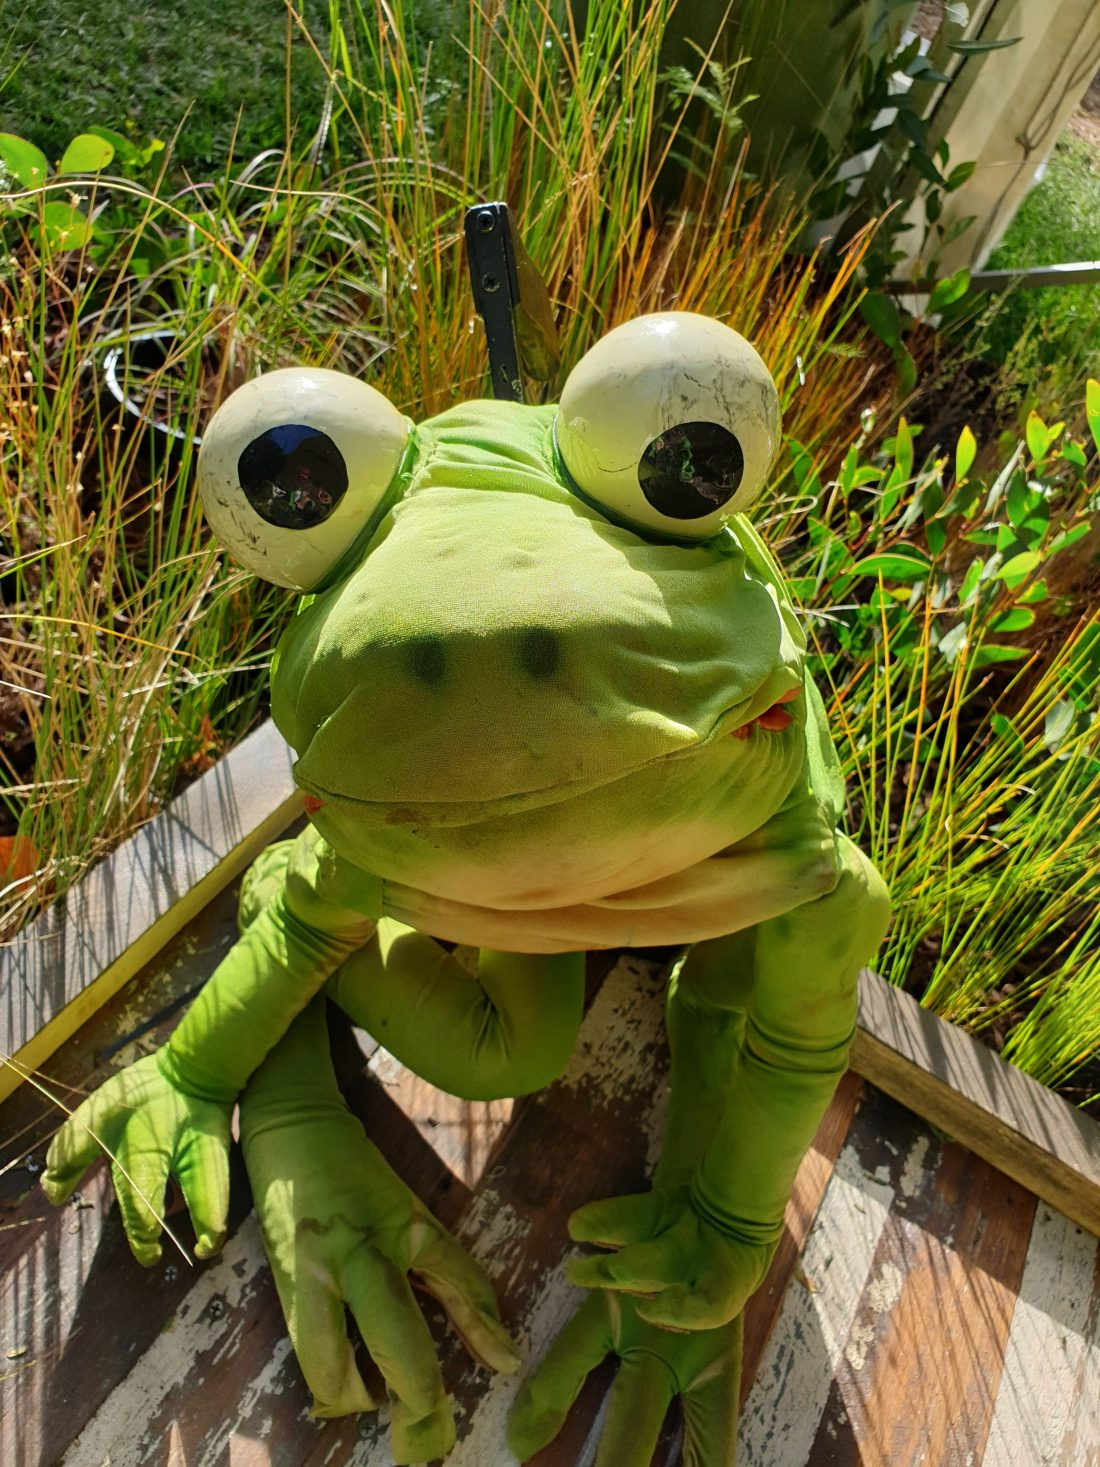 A large green frog puppet, with plants in the background